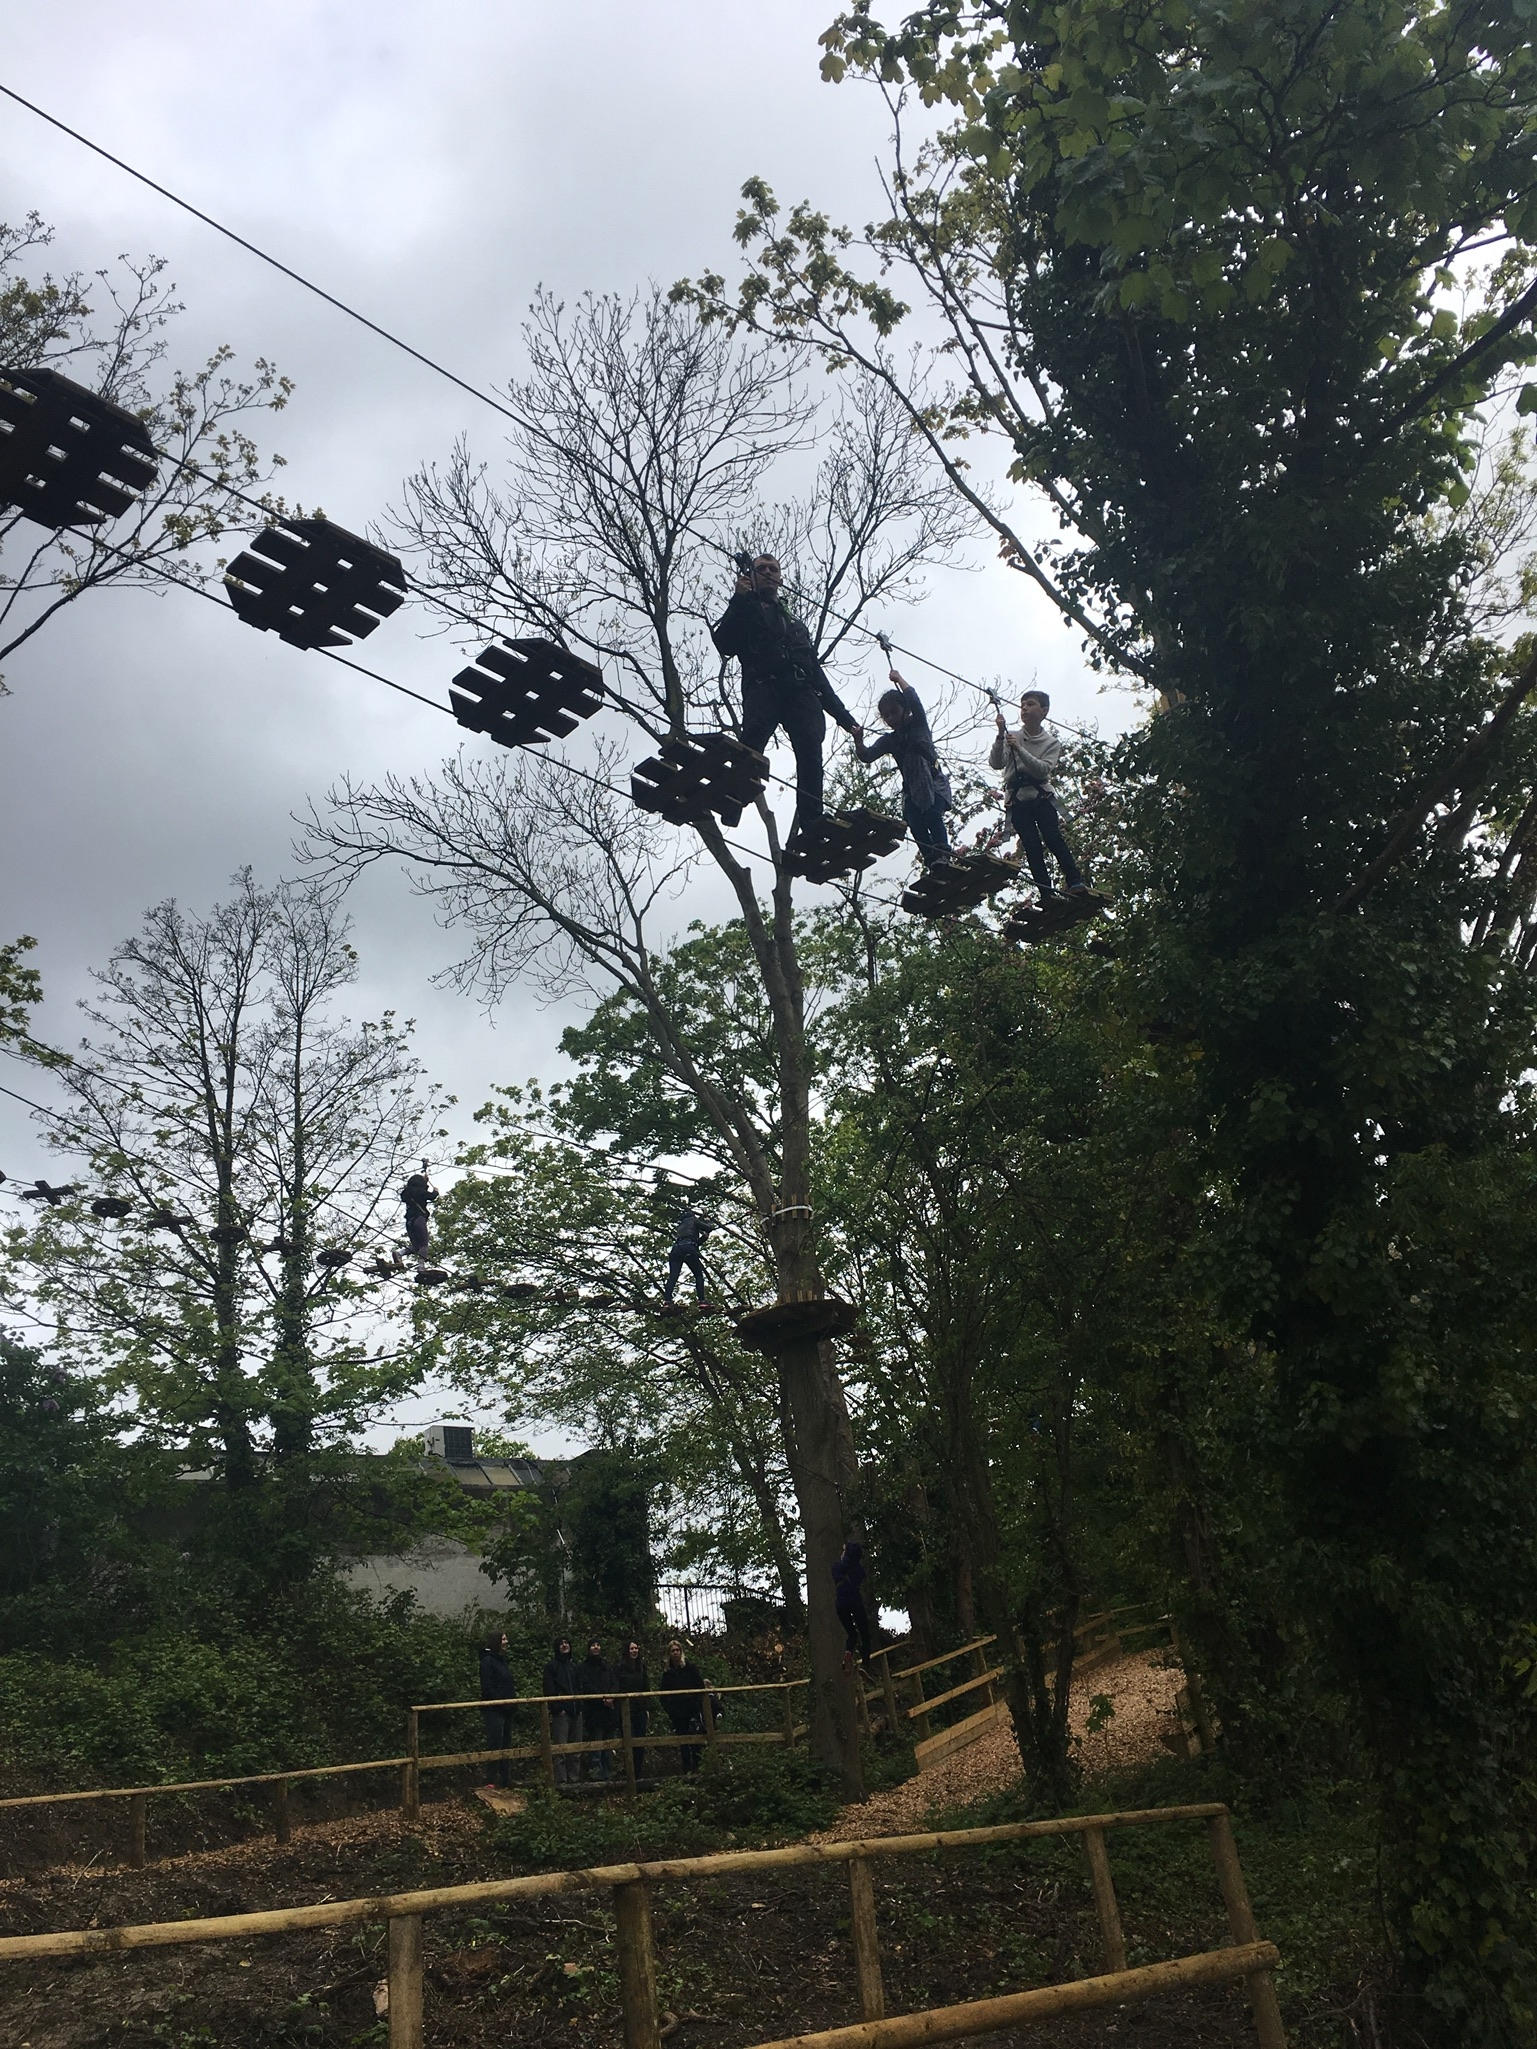 Go Ape instructors